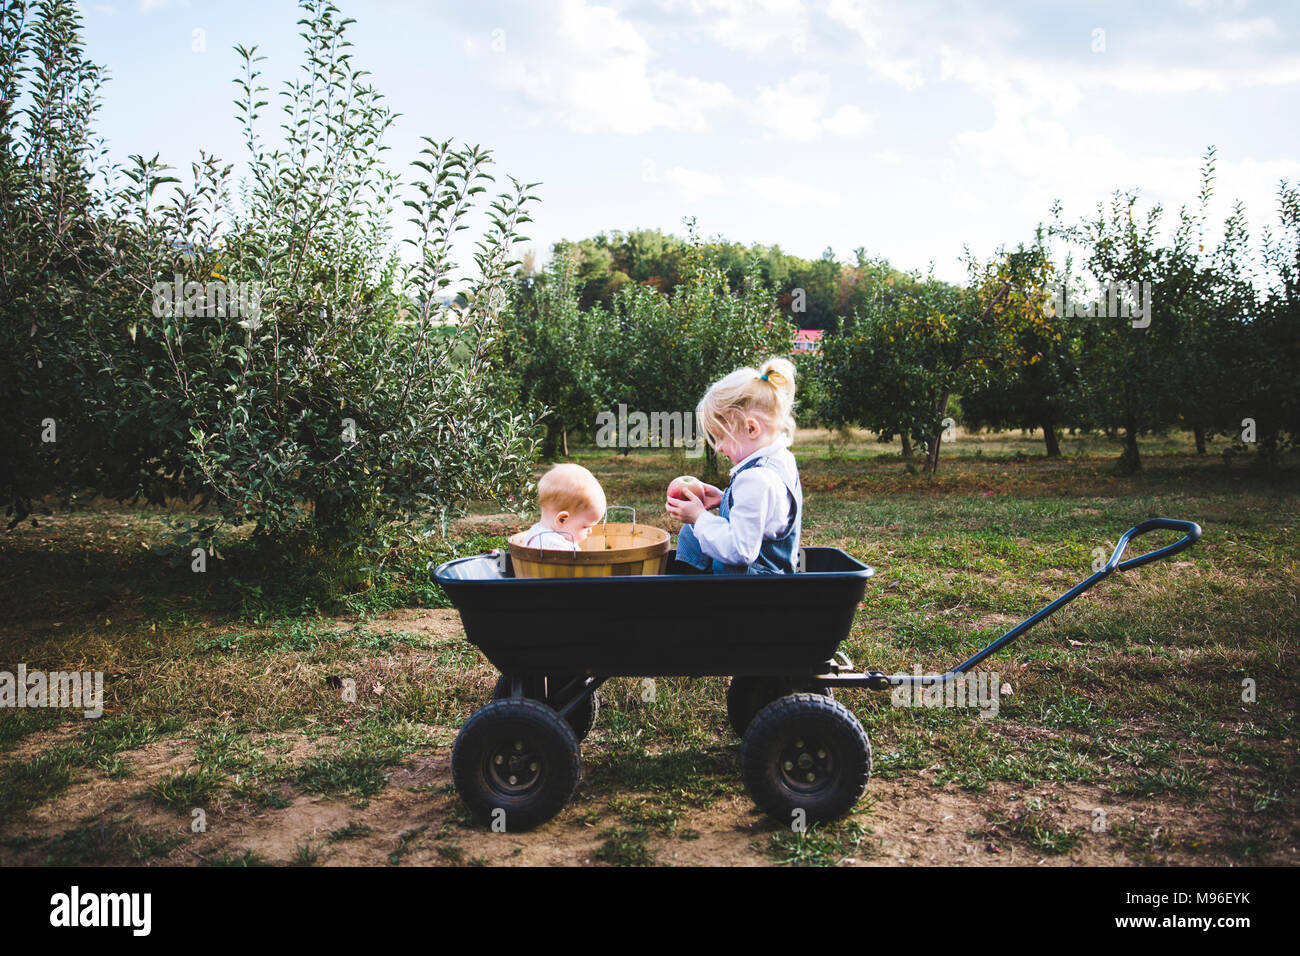 Girl and baby sitting in orchard wagon - Stock Image